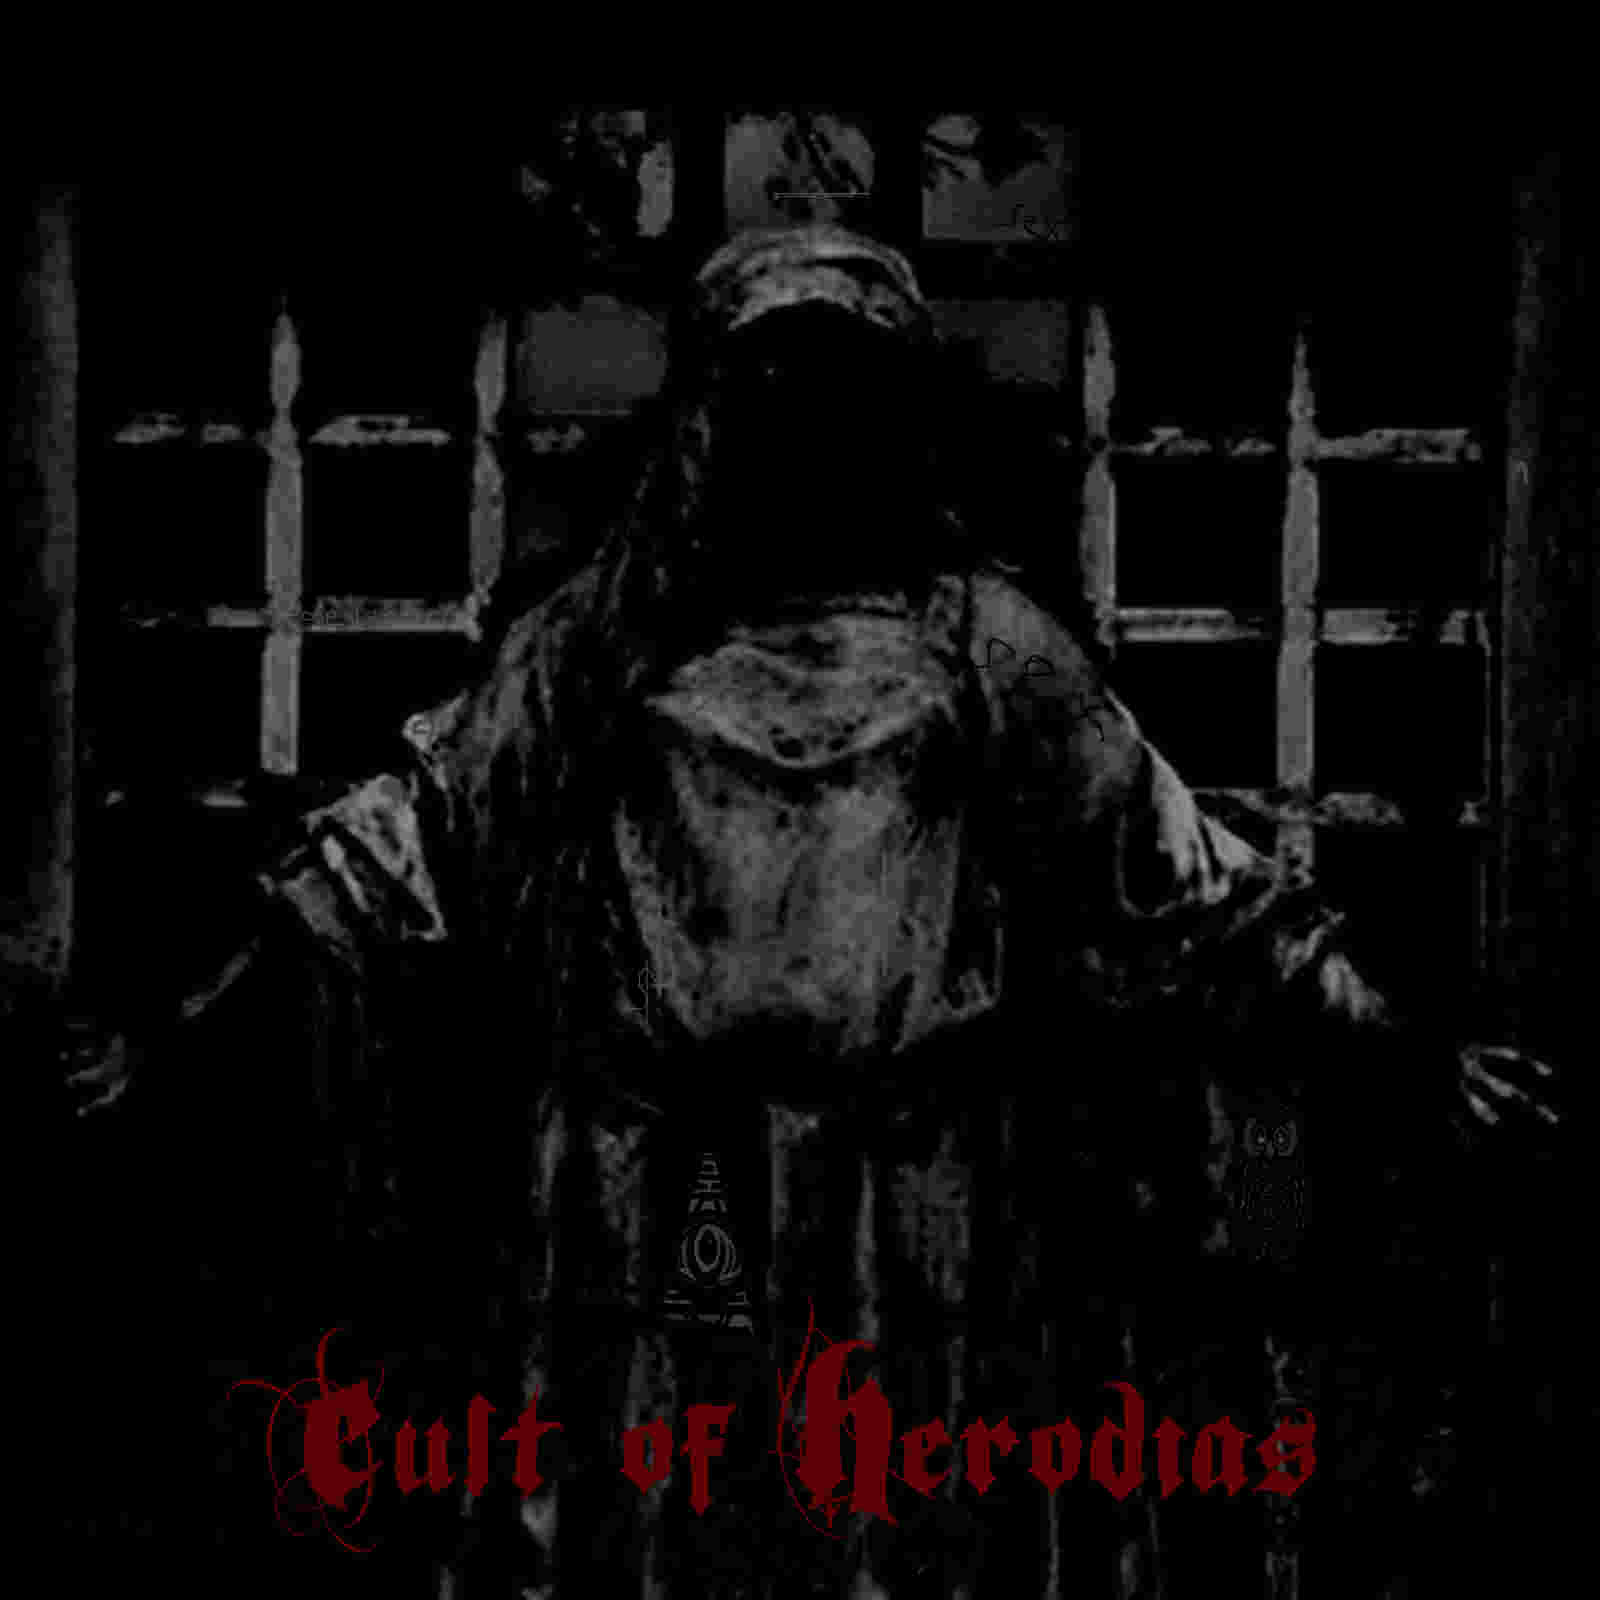 Cult of Herodias - Cult of Herodias